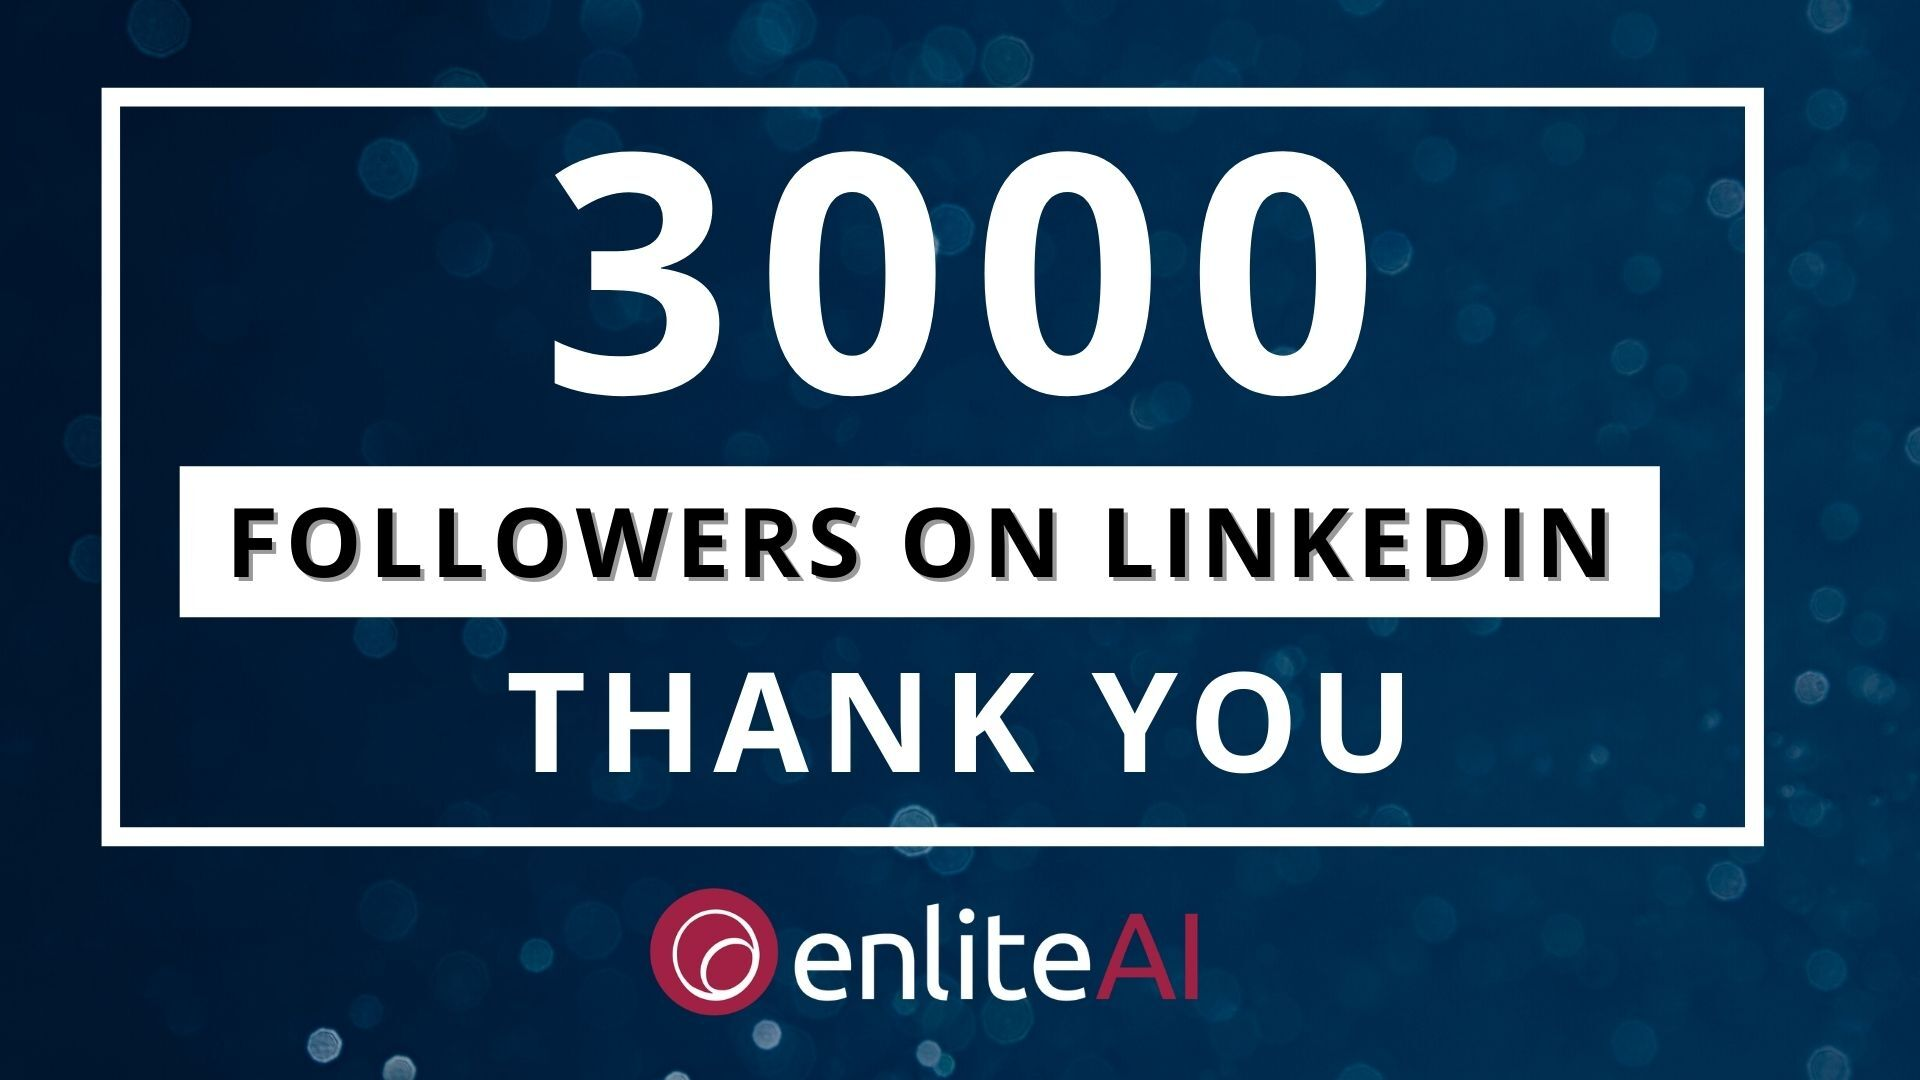 We are happy to have reached a milestone on our enliteAI LinkedIn Company Page.